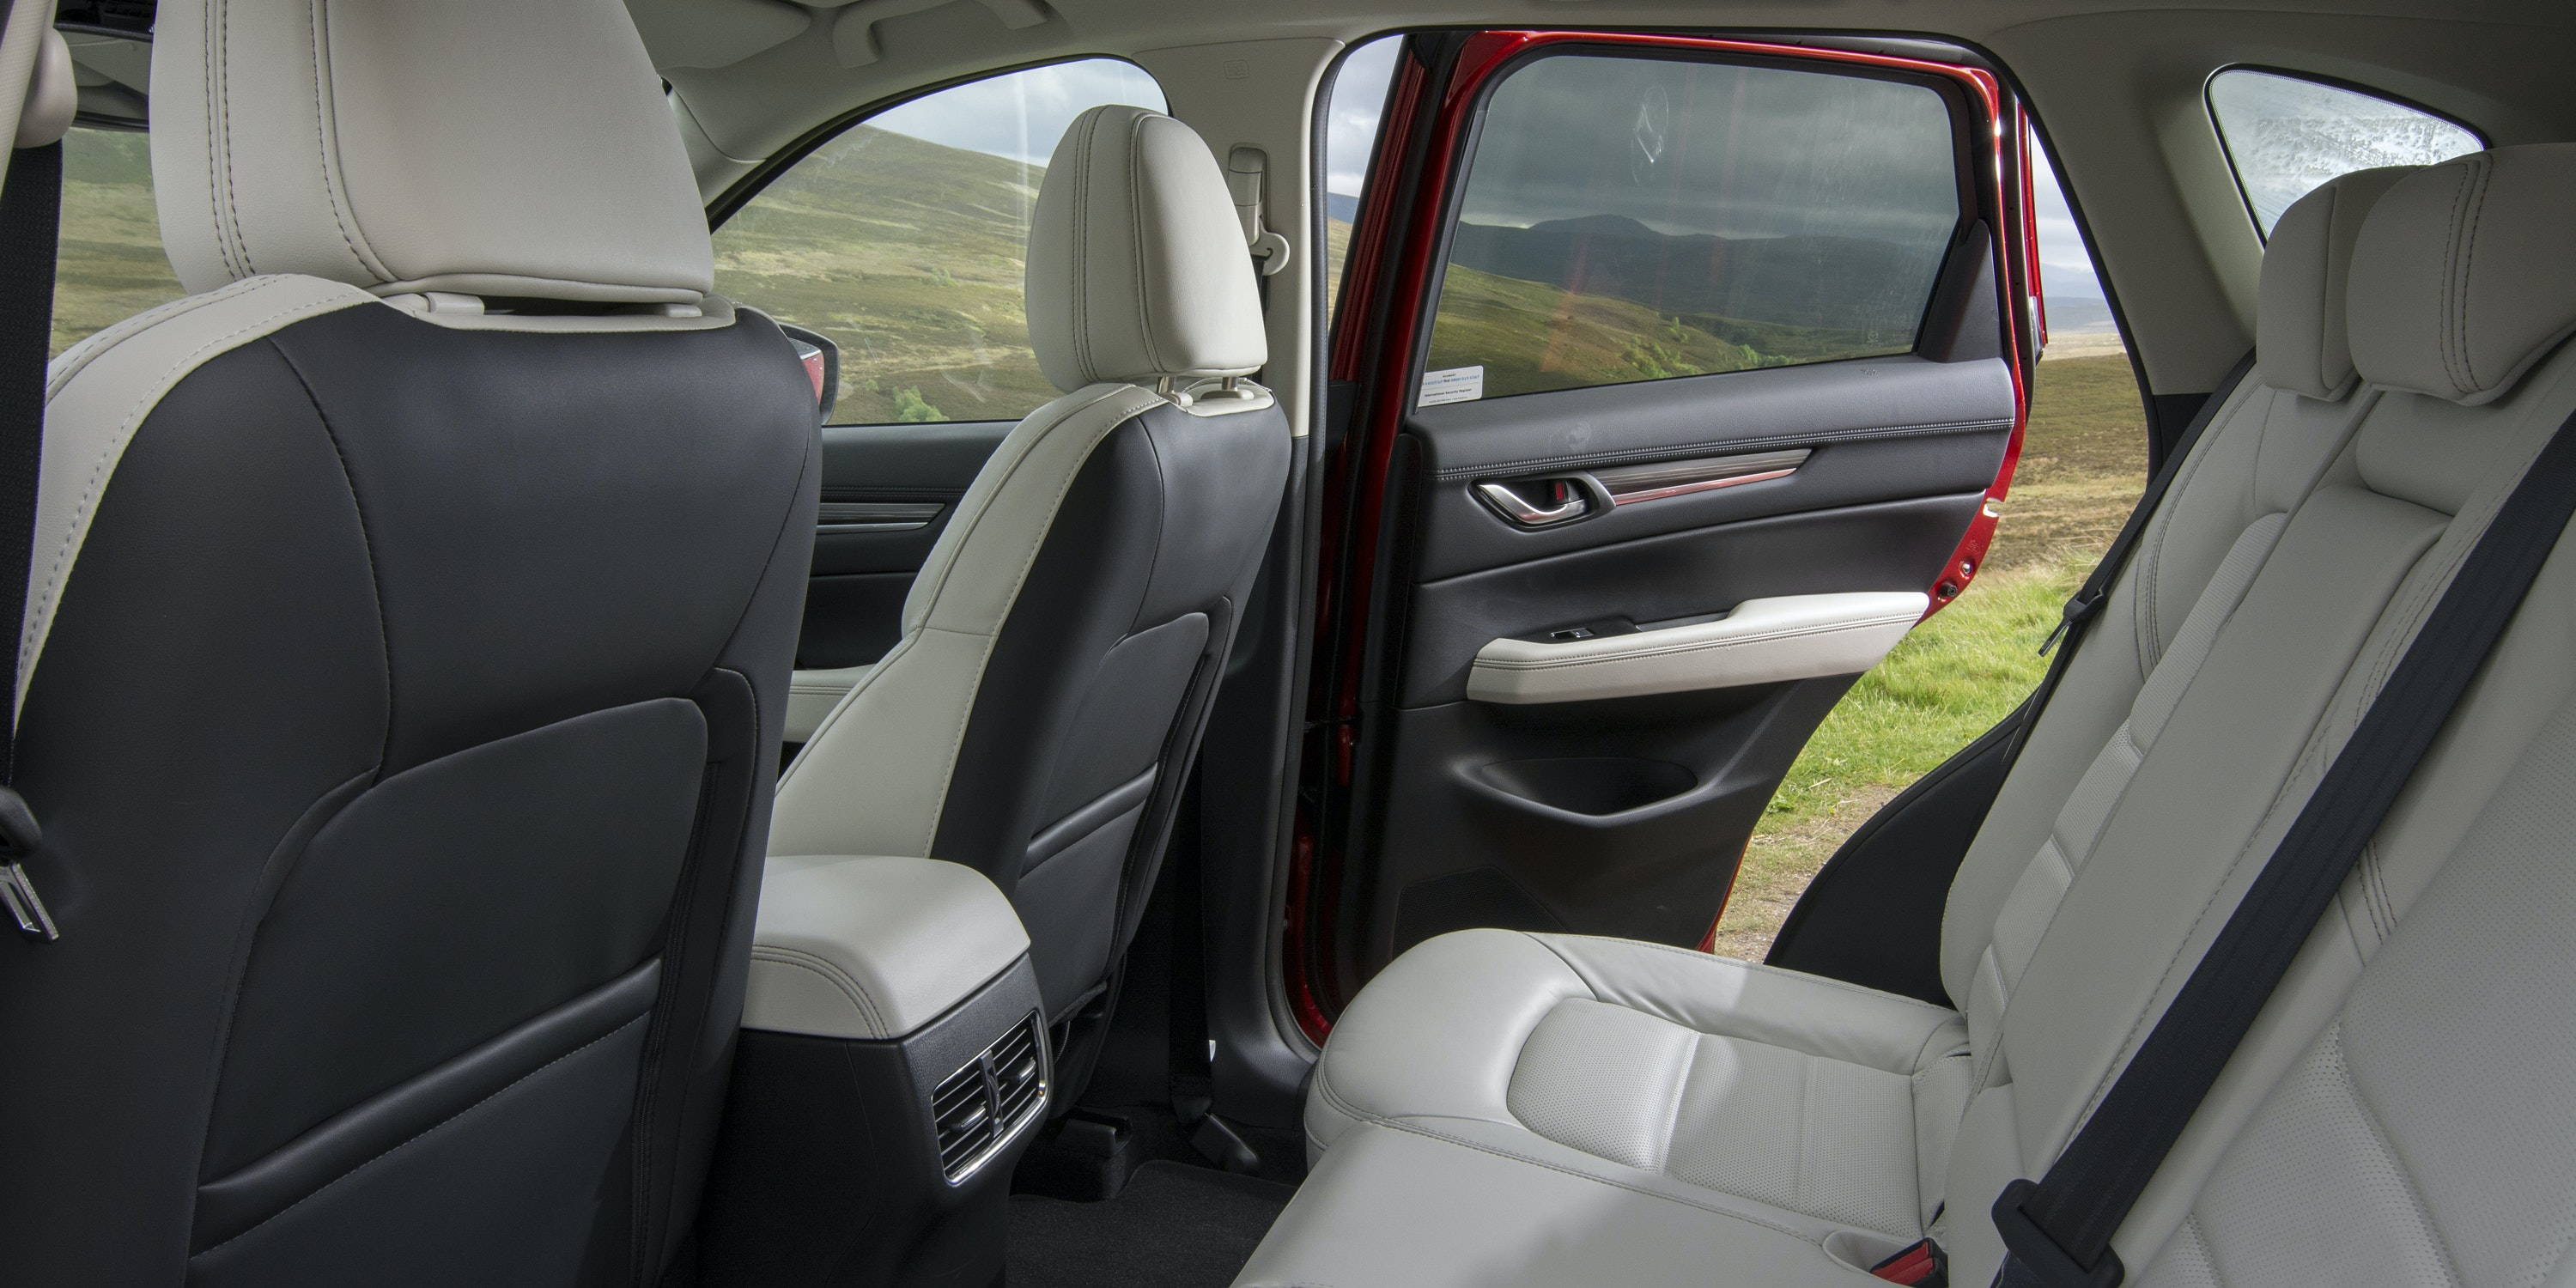 There's loads of space in the back, even for tall passengers